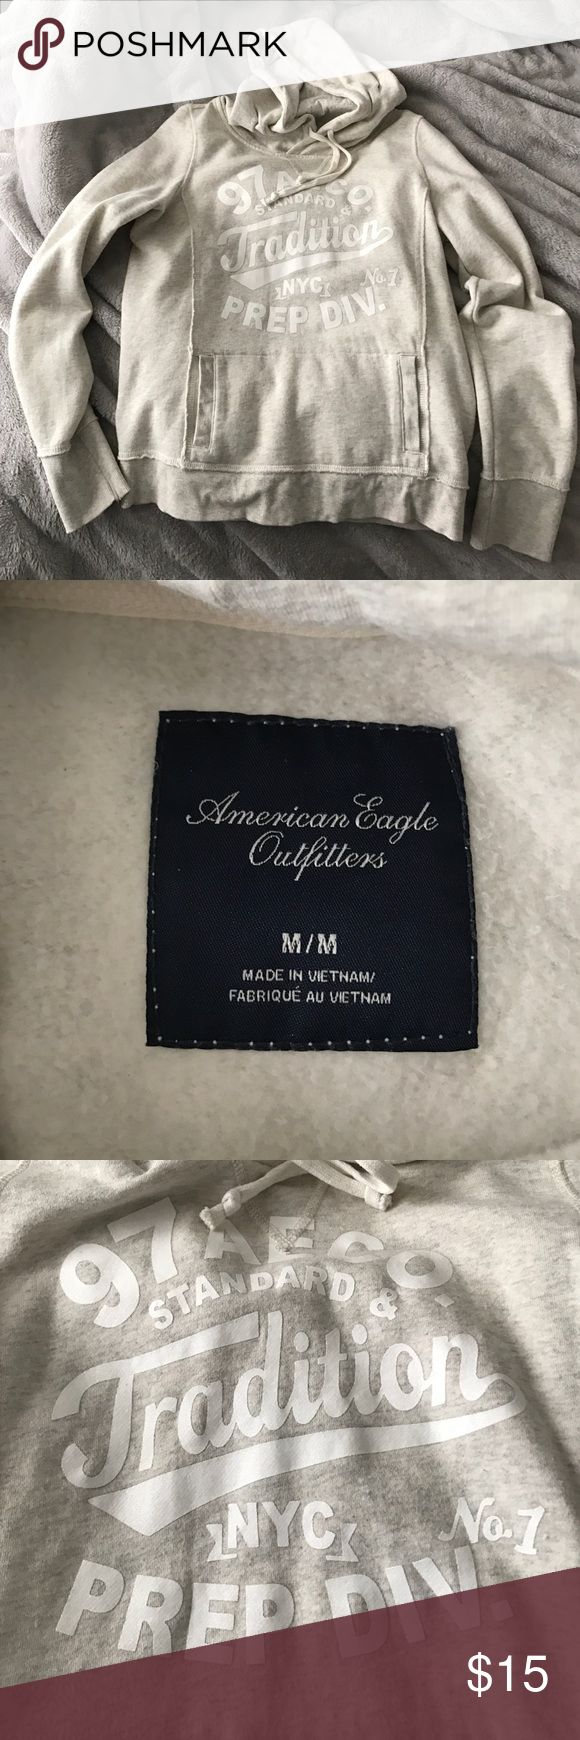 American Eagle Sweatshirt Great condition barely worn, just grew out of it. American Eagle Outfitters Tops Sweatshirts & Hoodies